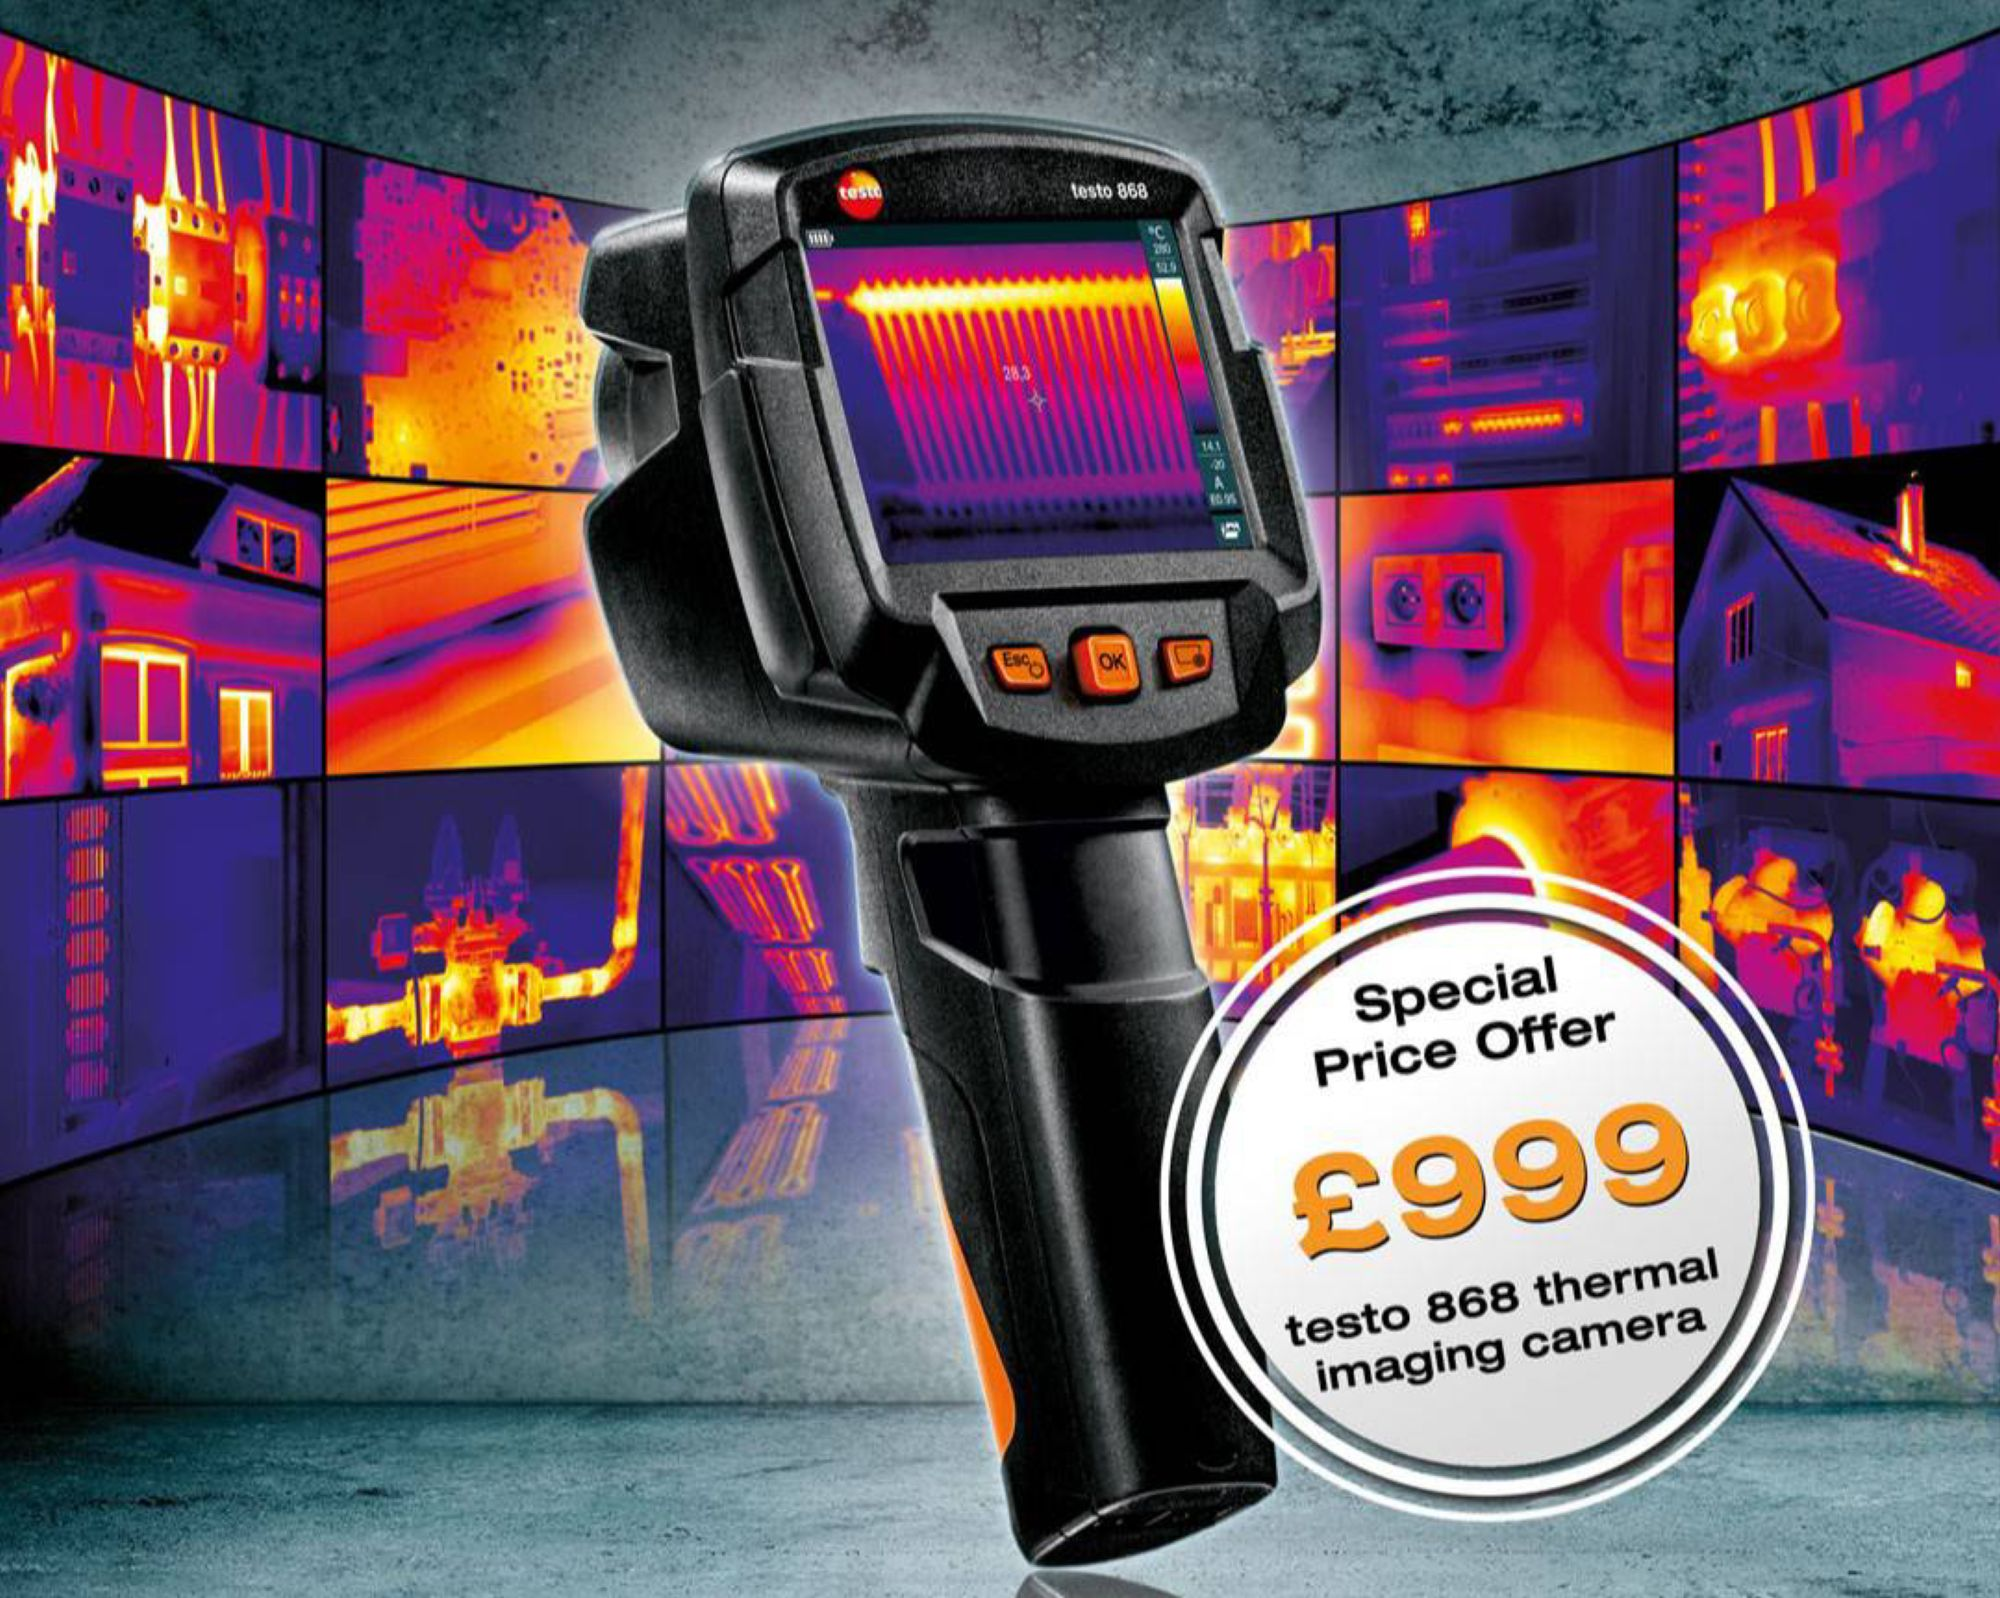 Special Offer on testo 868